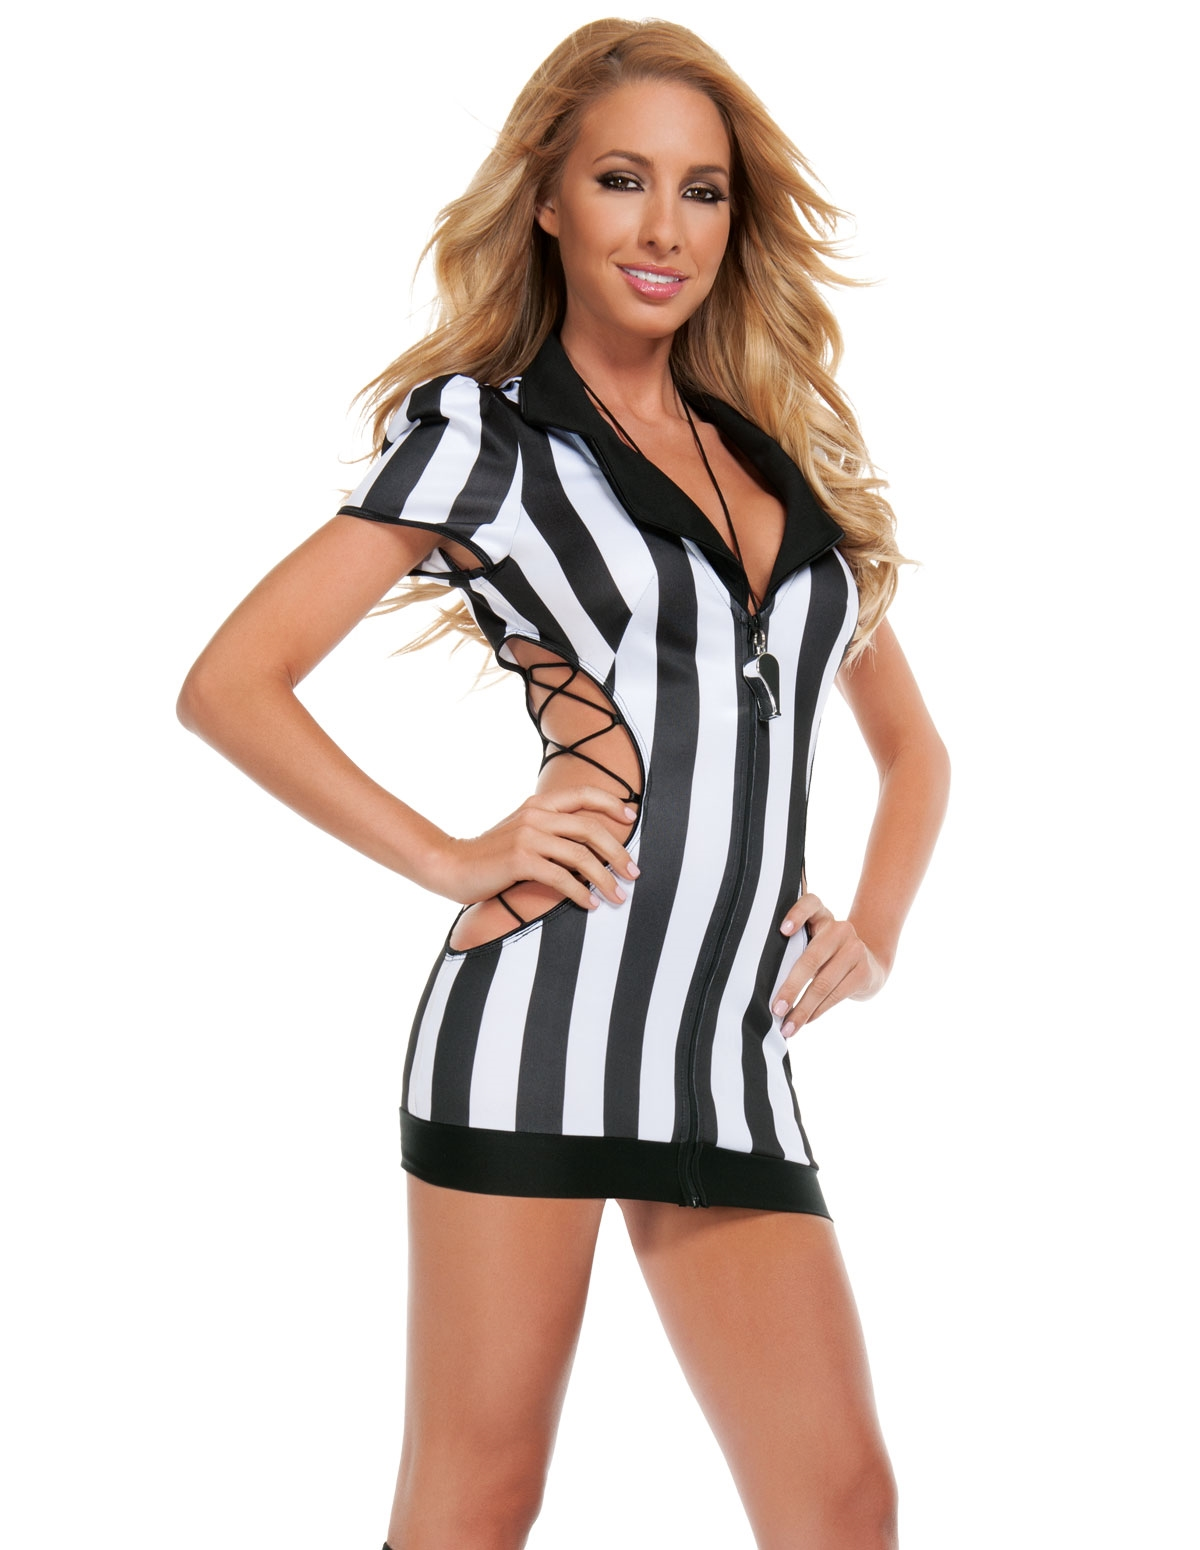 Cut-Out Referee Costume